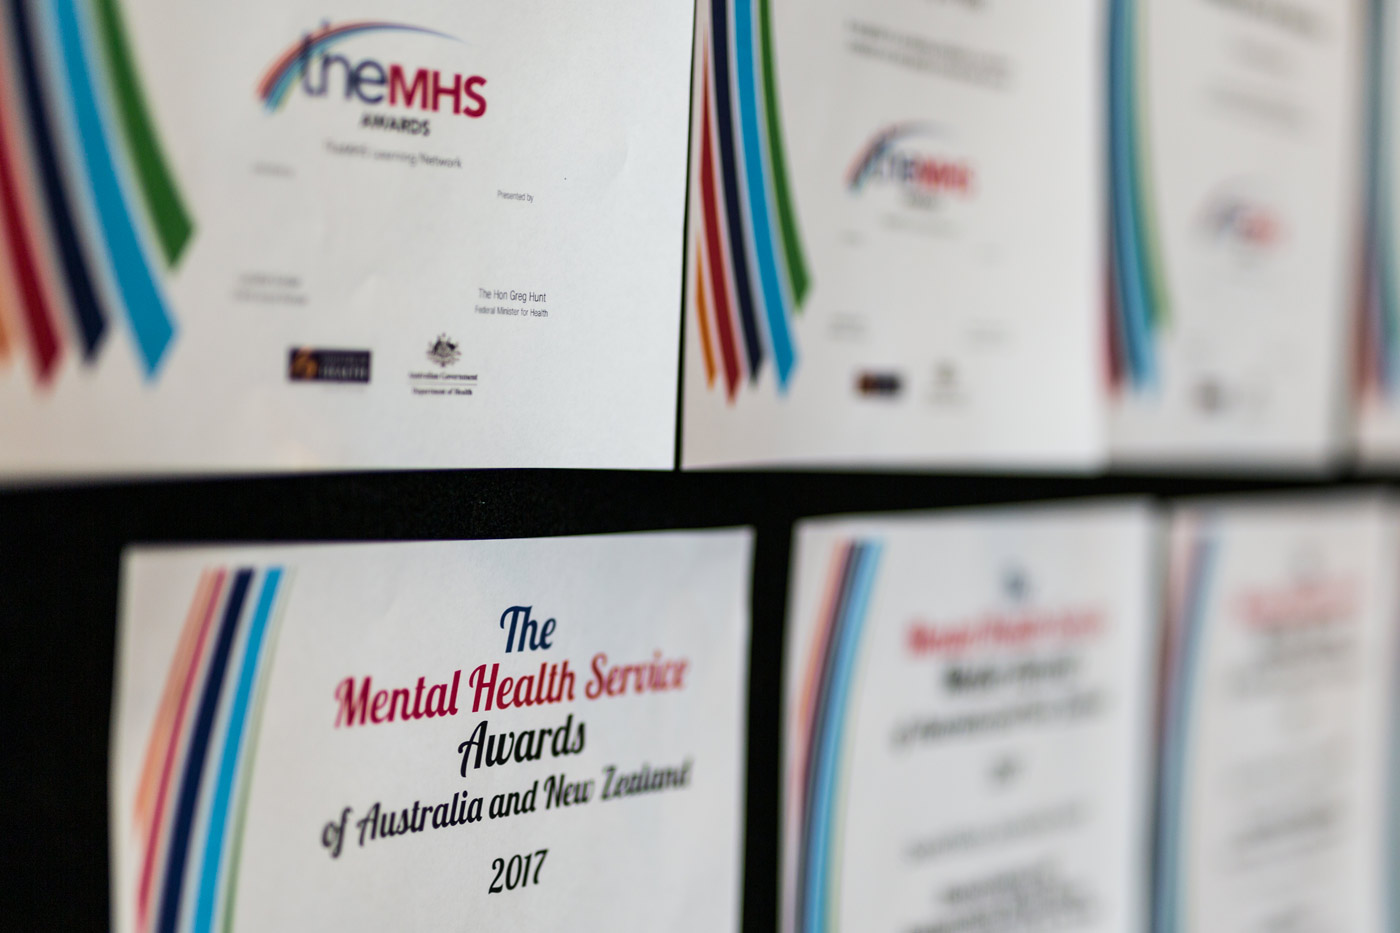 The Mental Health Service Awards Hanging on the wall